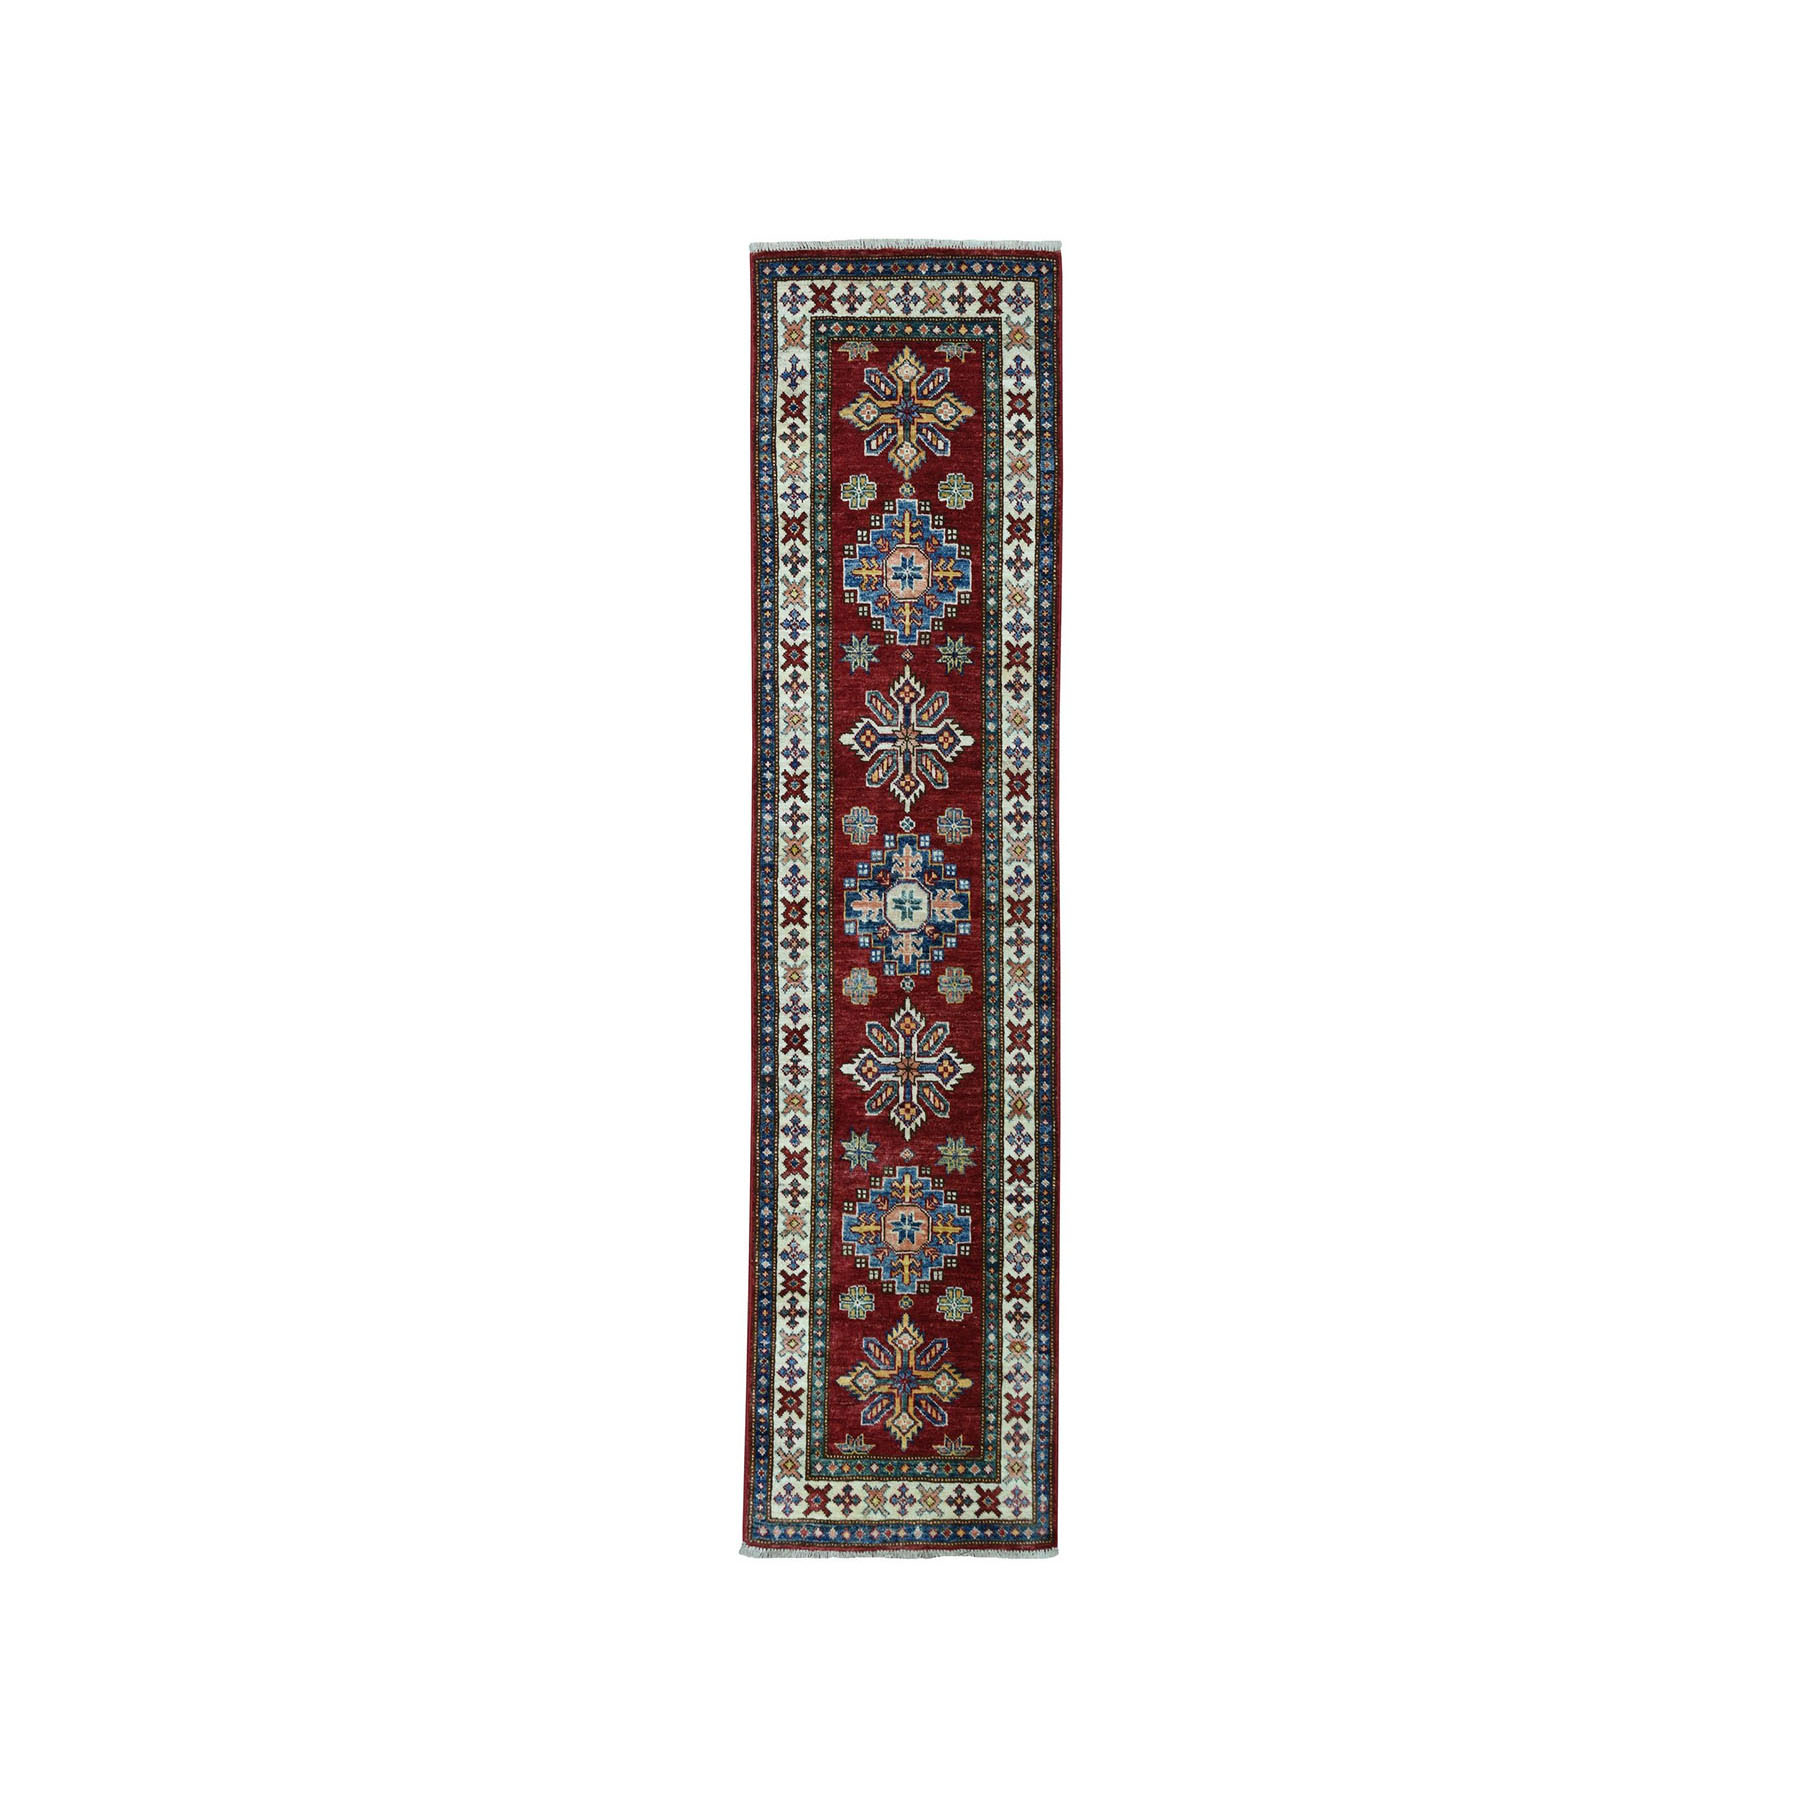 "2'X6'2"" Red Super Kazak Pure Wool Geometric Design Hand-Knotted Runner Oriental Rug moaea0ae"